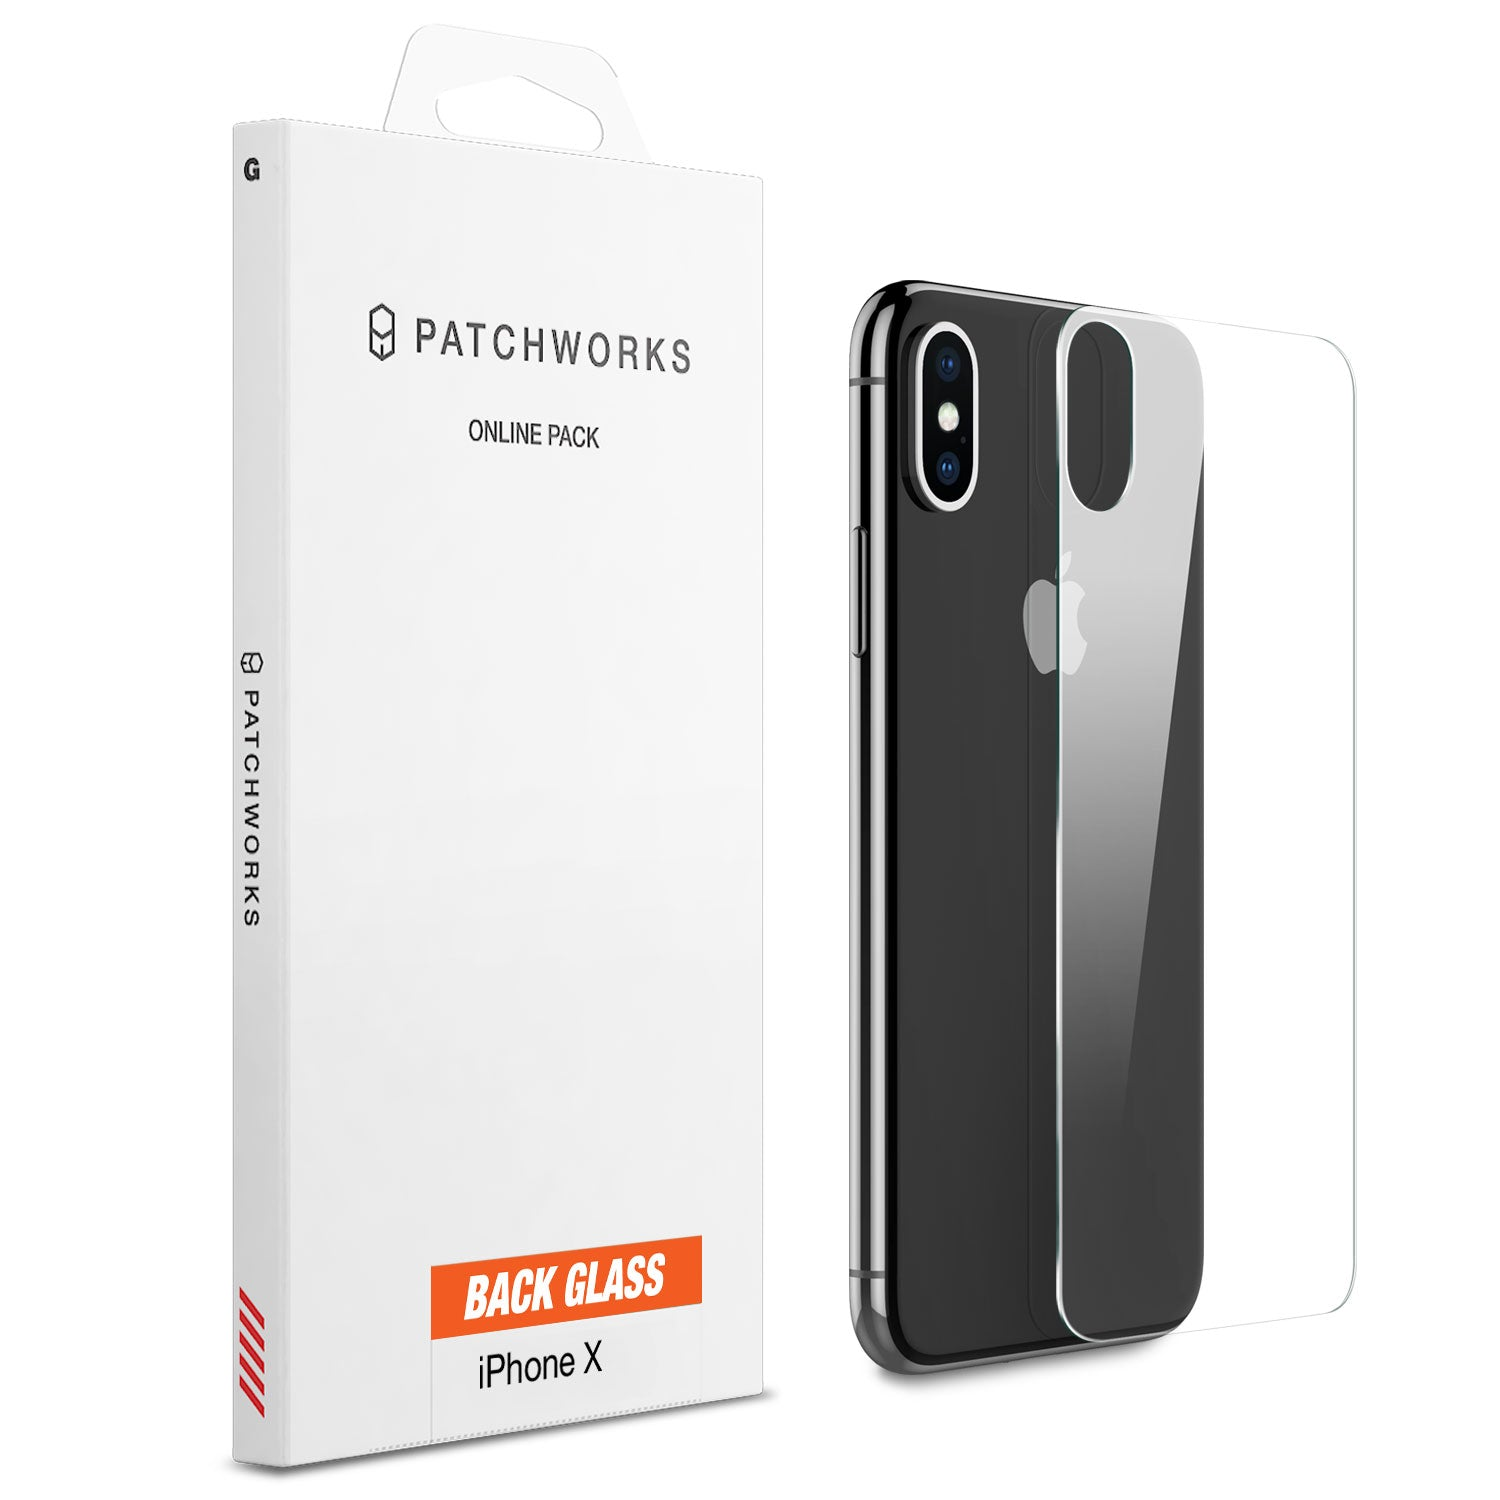 IPHONE X GLASS SCREEN PROTECTOR - ITG BACK GLASS